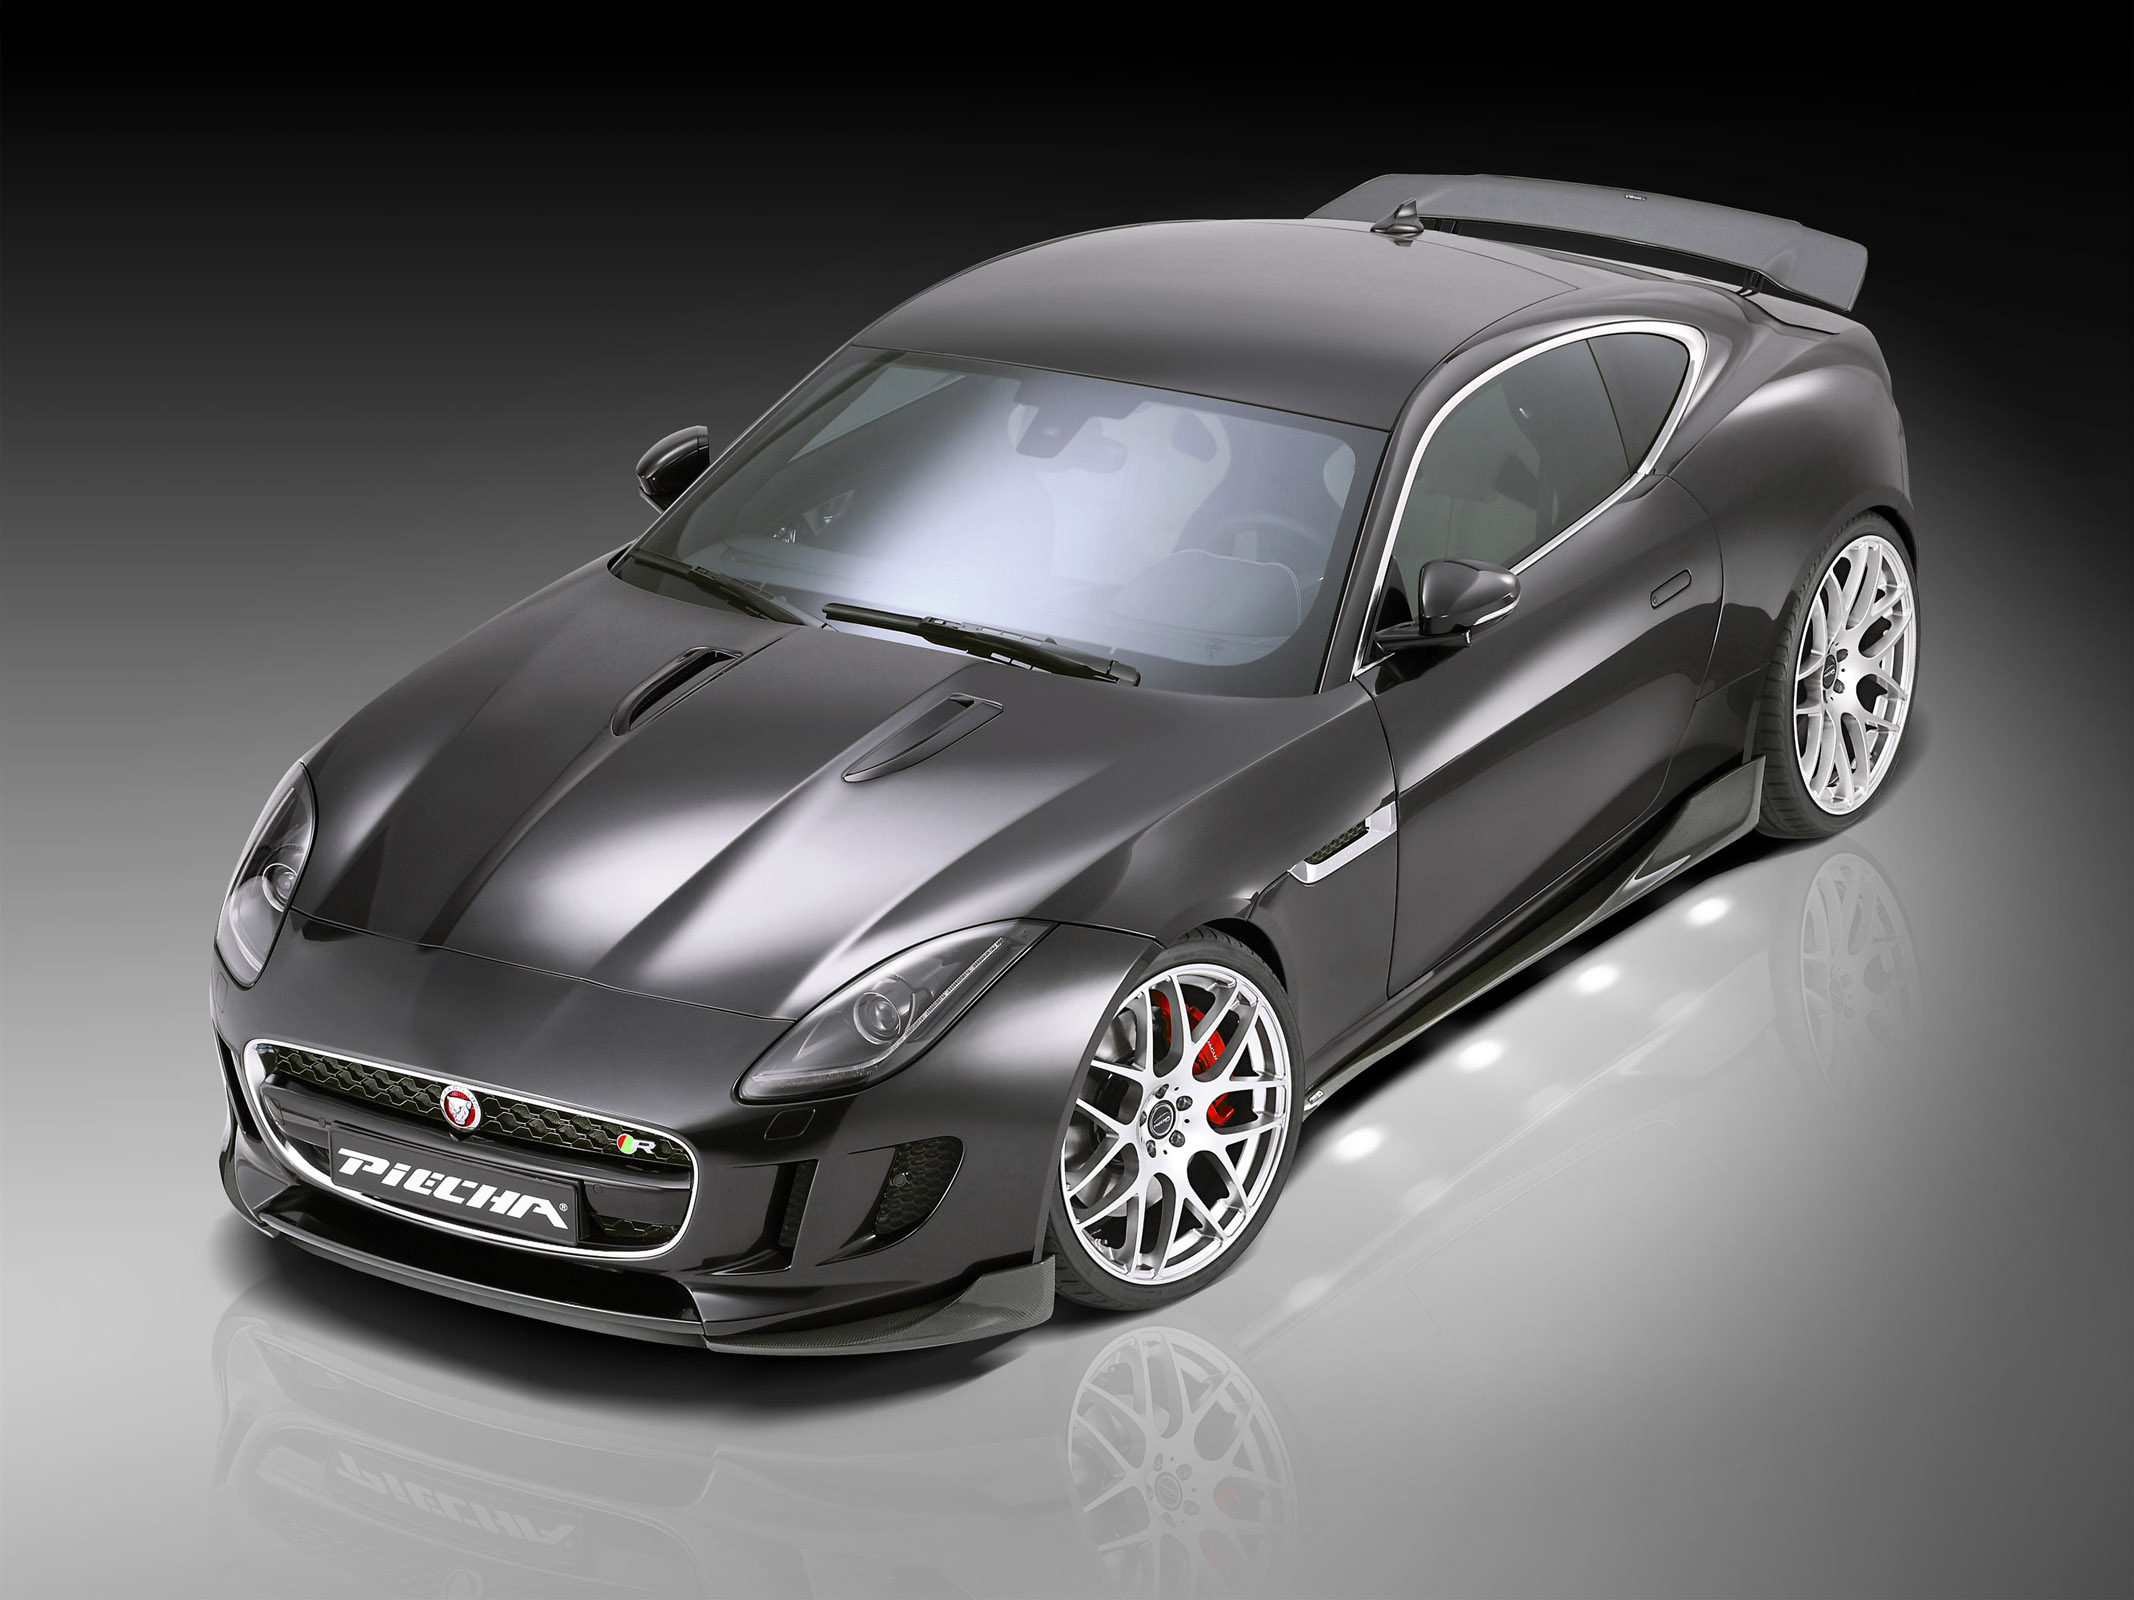 2015 Piecha Jaguar F-Type R-Coupe